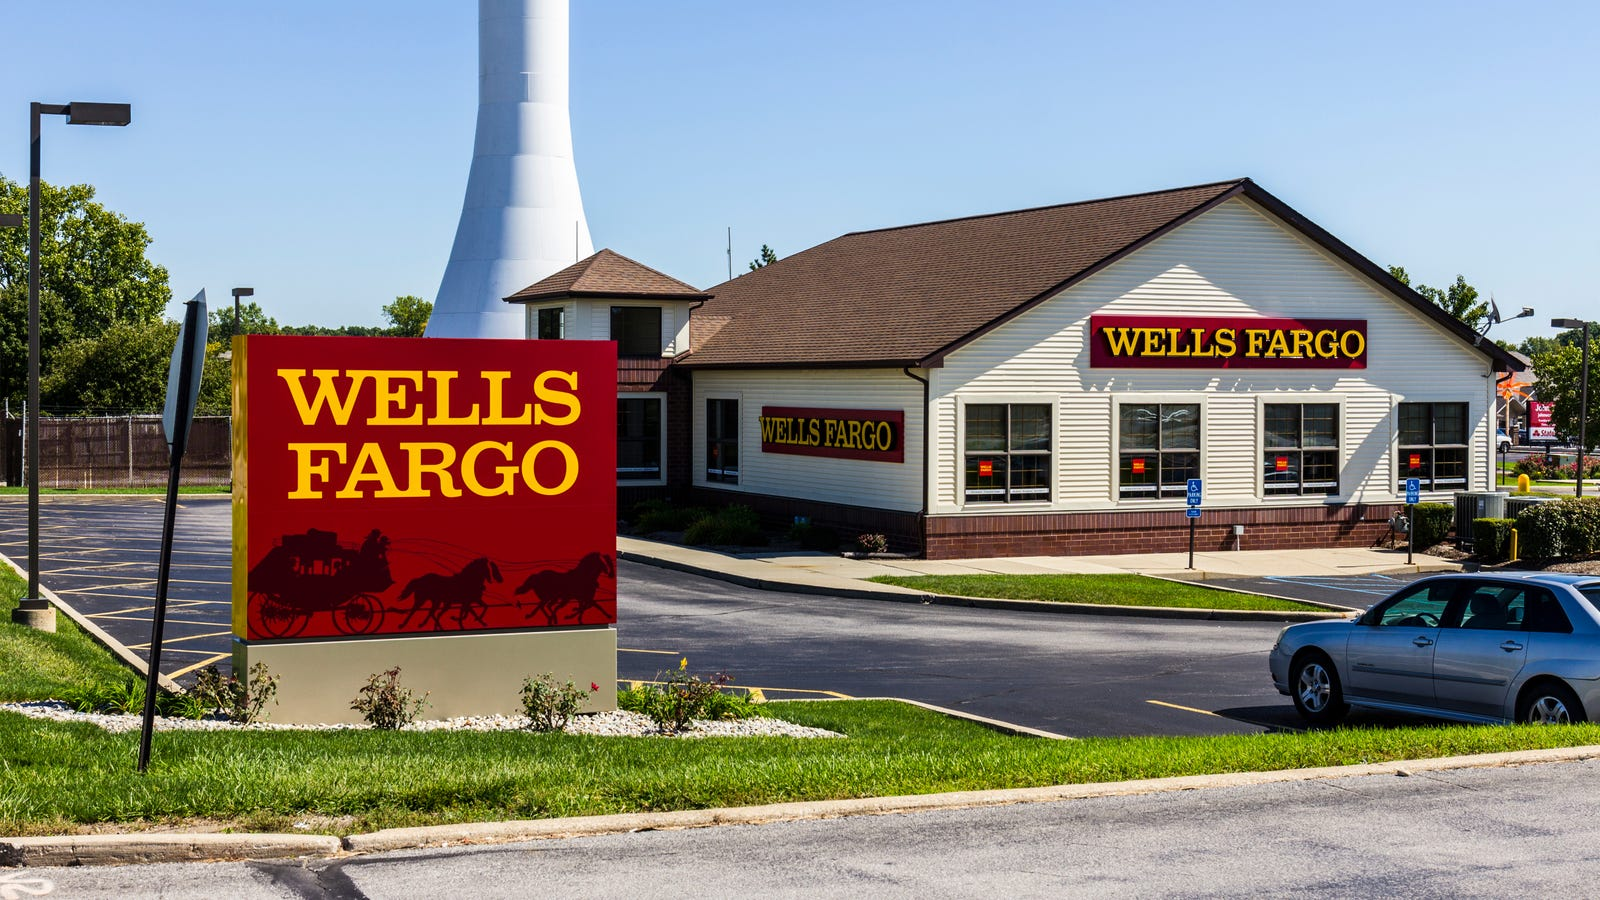 Wells Fargo Employees Call Cops on 78-Year-Old Black Woman After